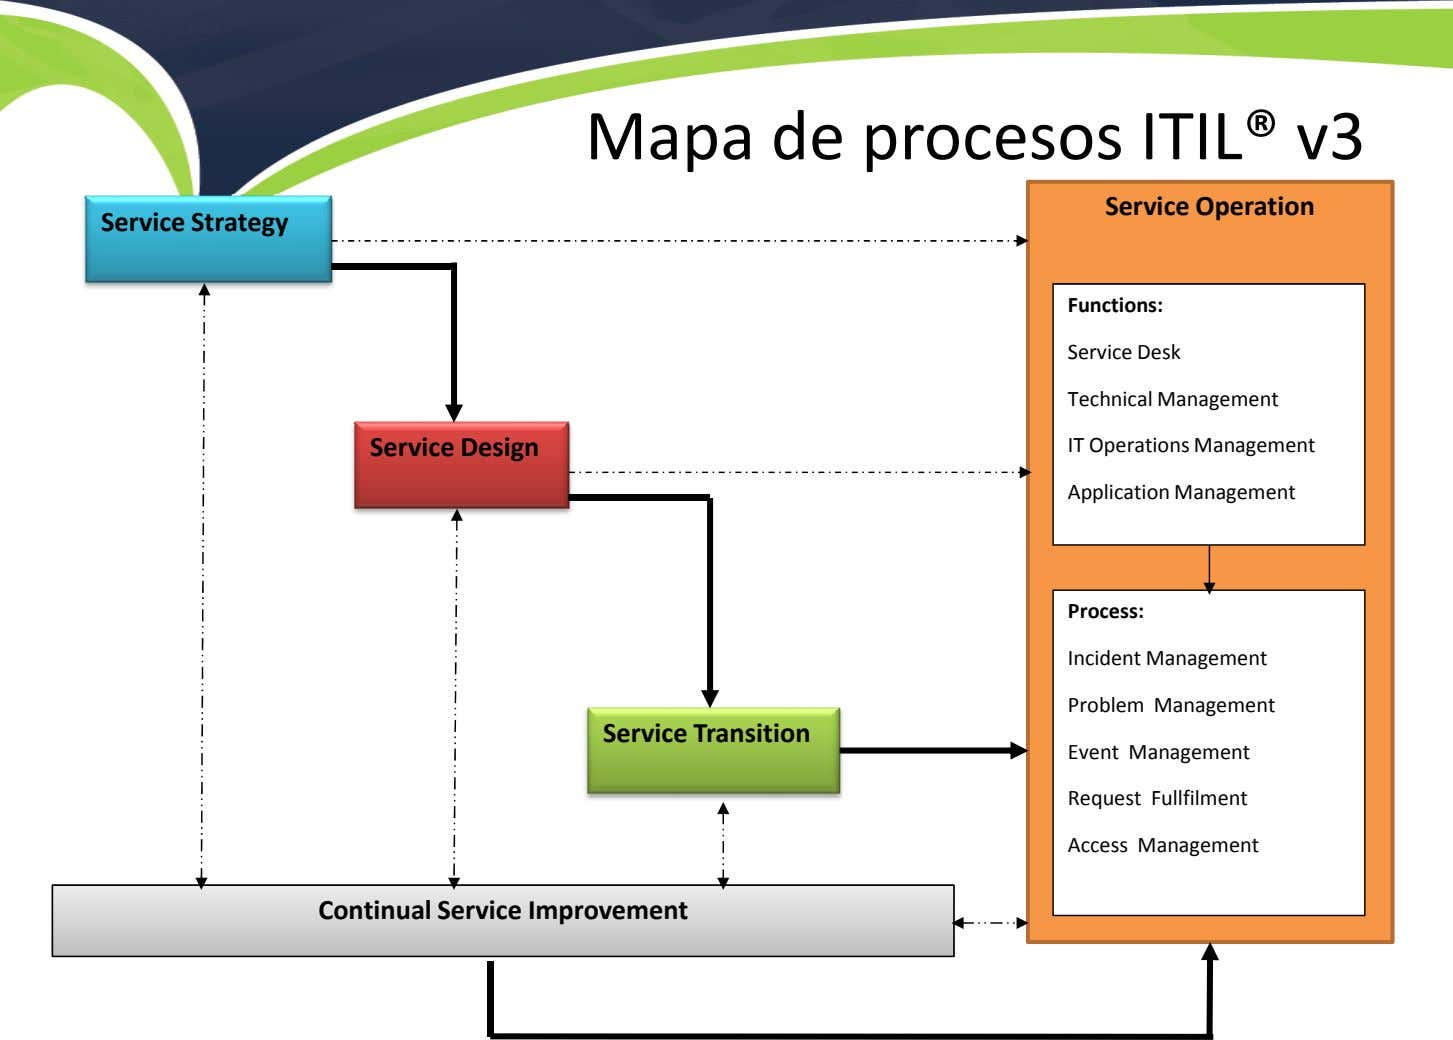 Mapa de procesos ITIL® v3 Service Operation Service Strategy Functions: Service Desk Technical Management Service